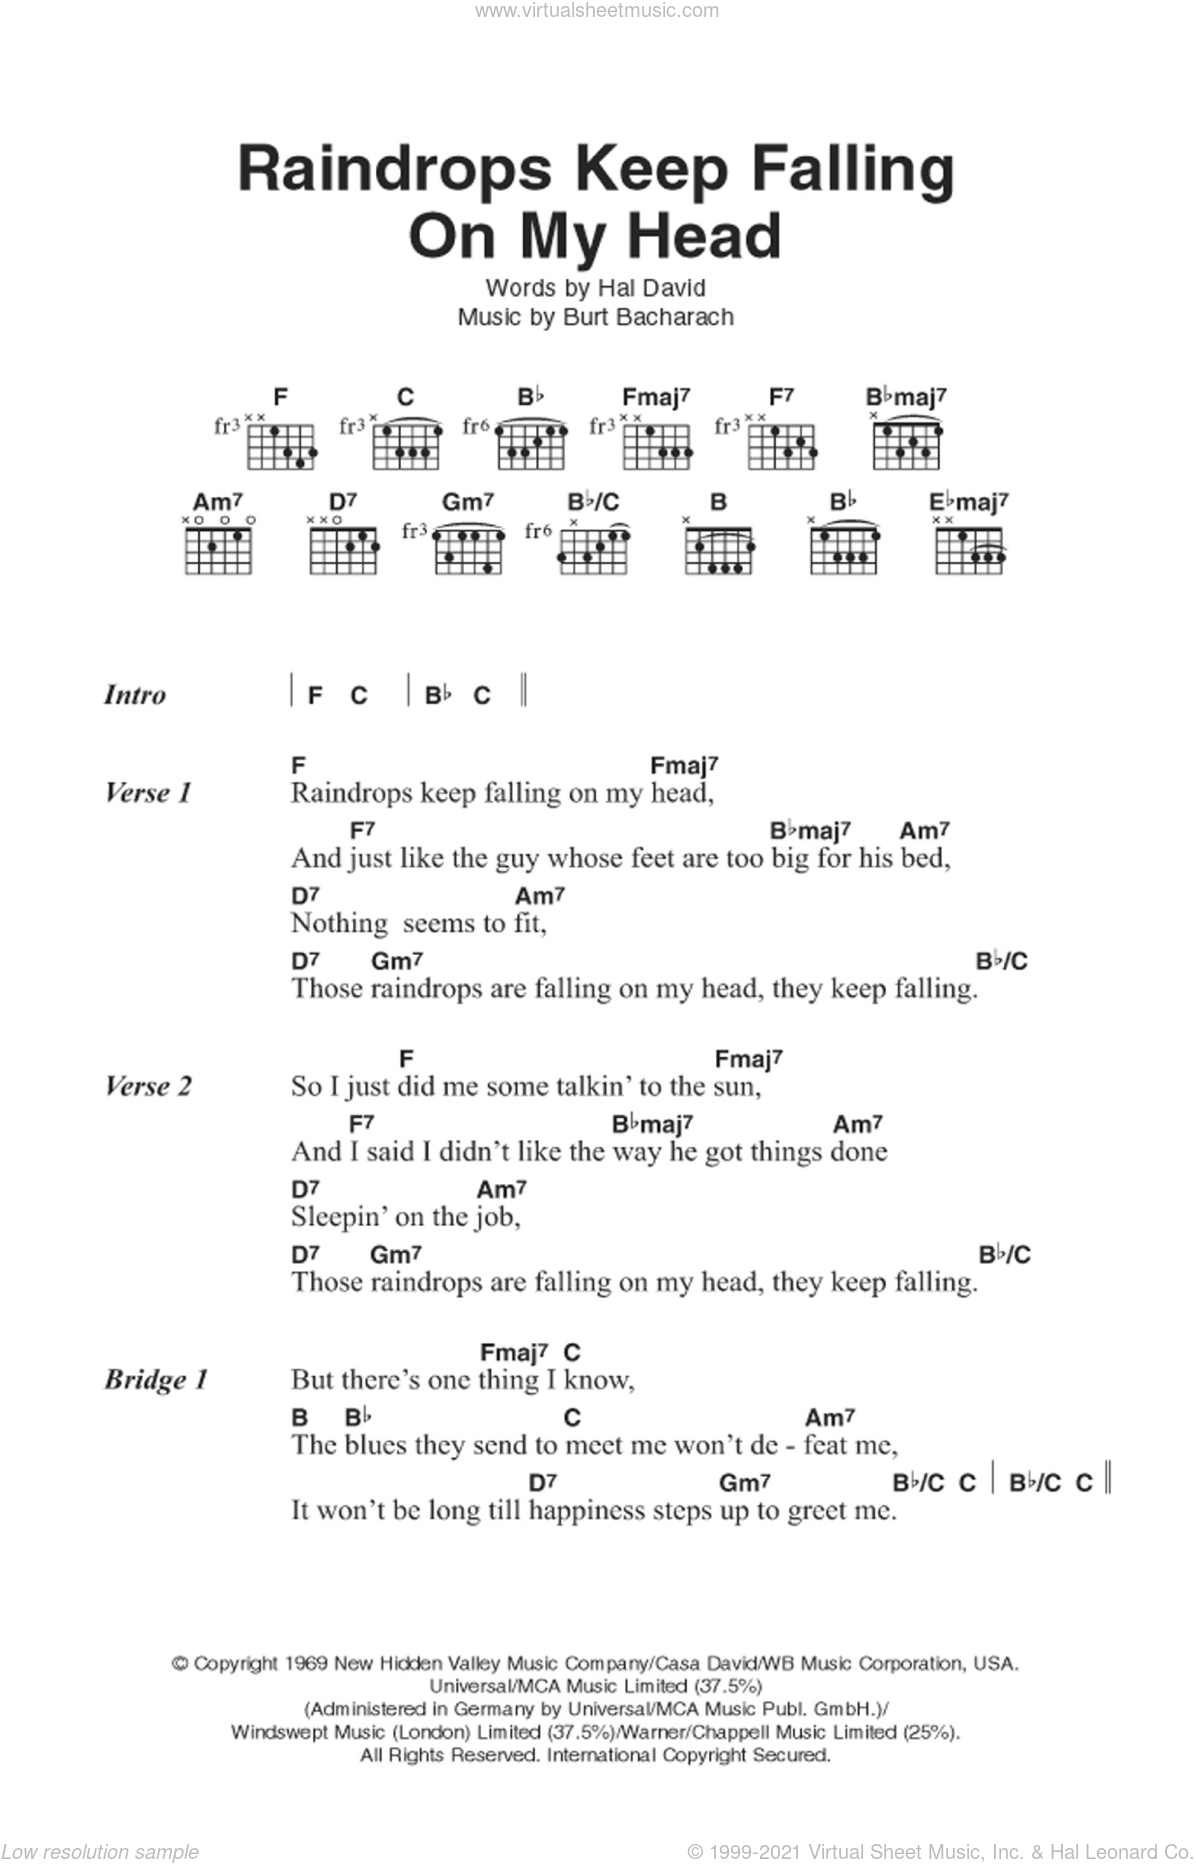 Raindrops Keep Falling On My Head sheet music for guitar (chords) by Burt Bacharach, Bacharach & David and Hal David, intermediate skill level